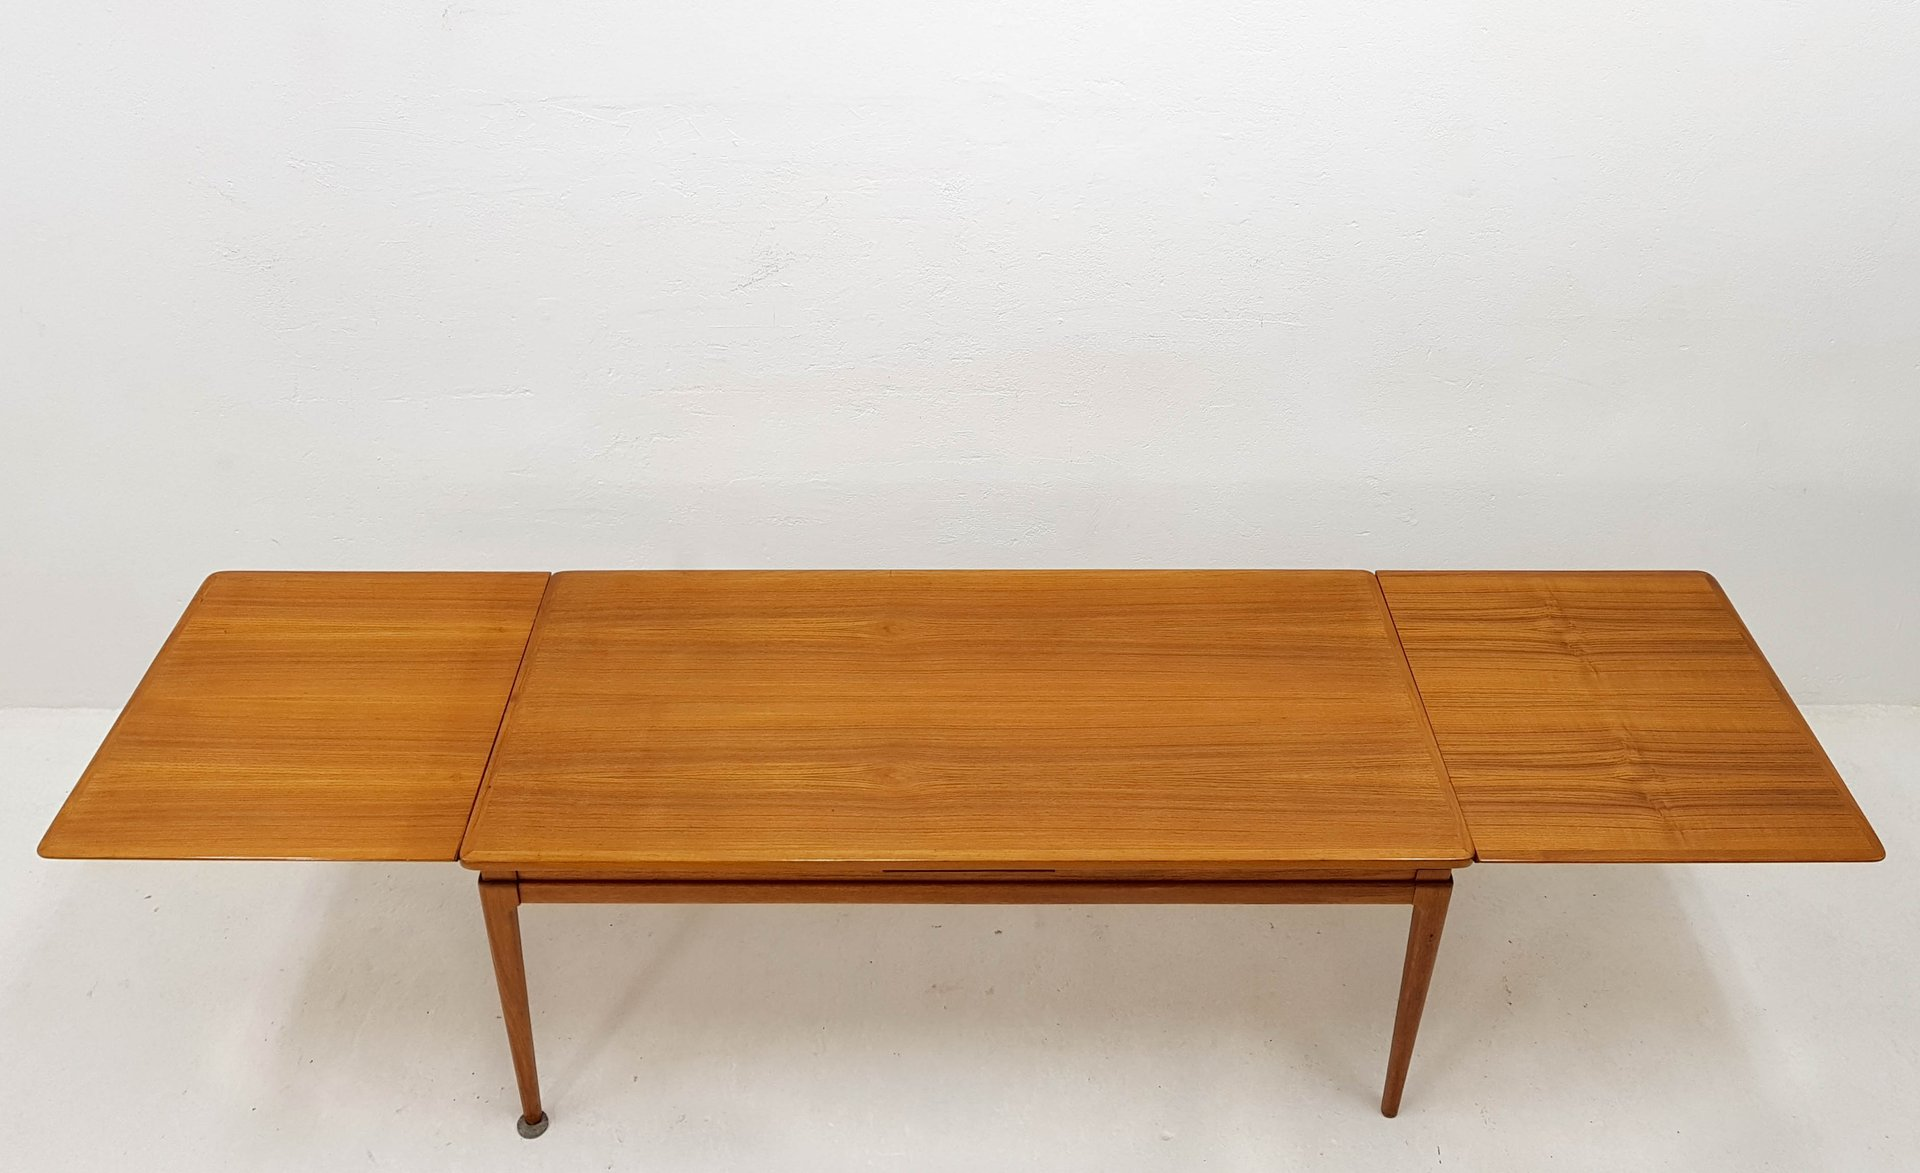 Extendable Teak Veneer Coffee Table By Johannes Anderson For CFC  Silkenborg, 1965